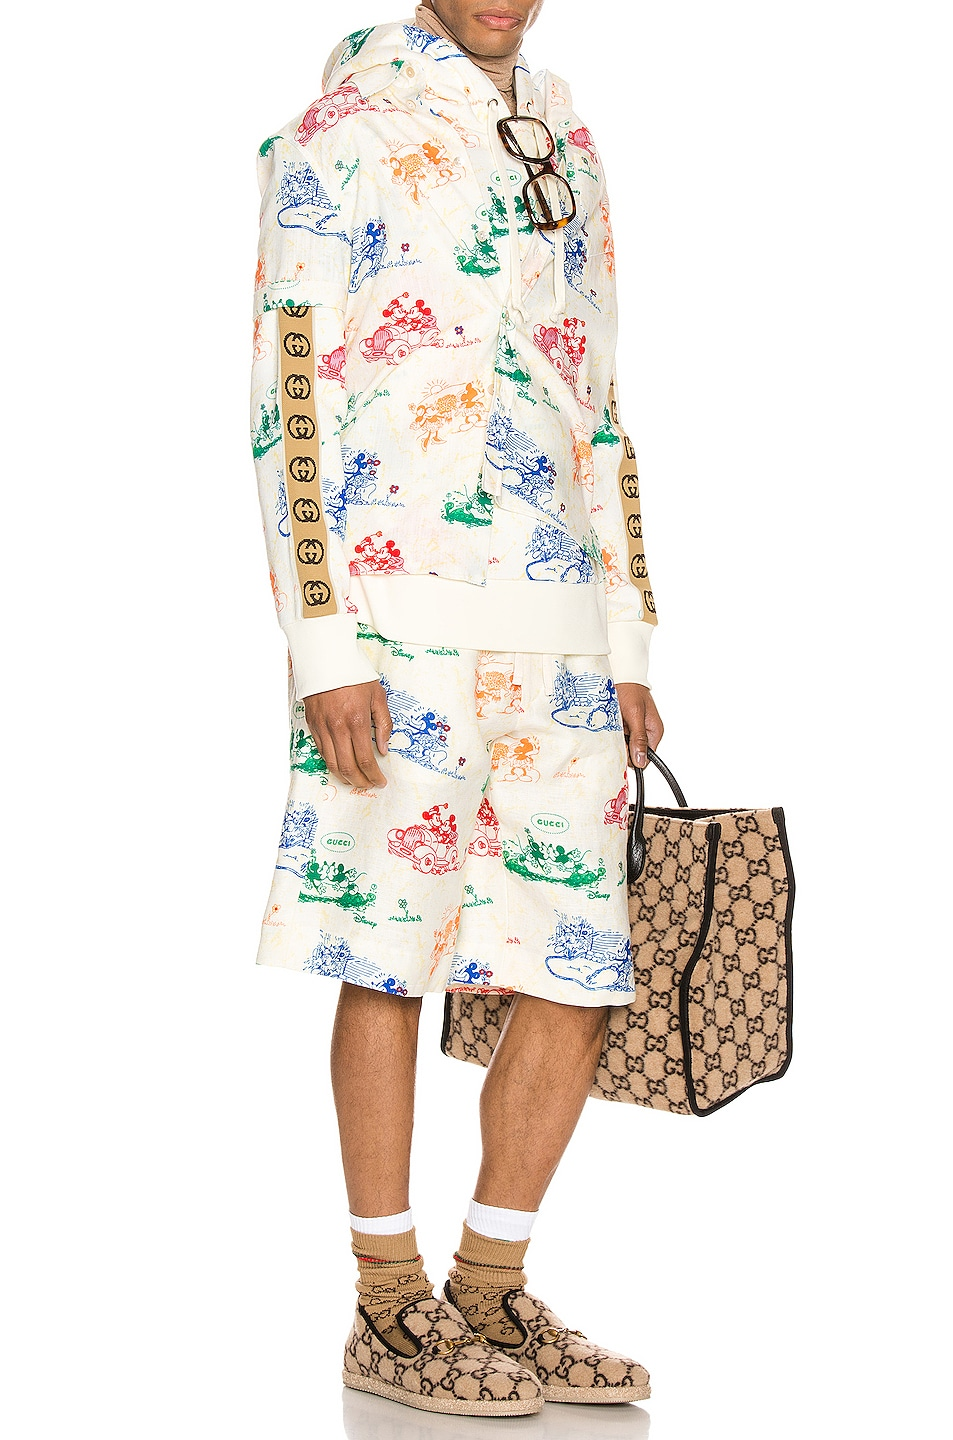 Image 4 of Gucci x Disney Printed Cotton Shirt in Ivory & Yard Print